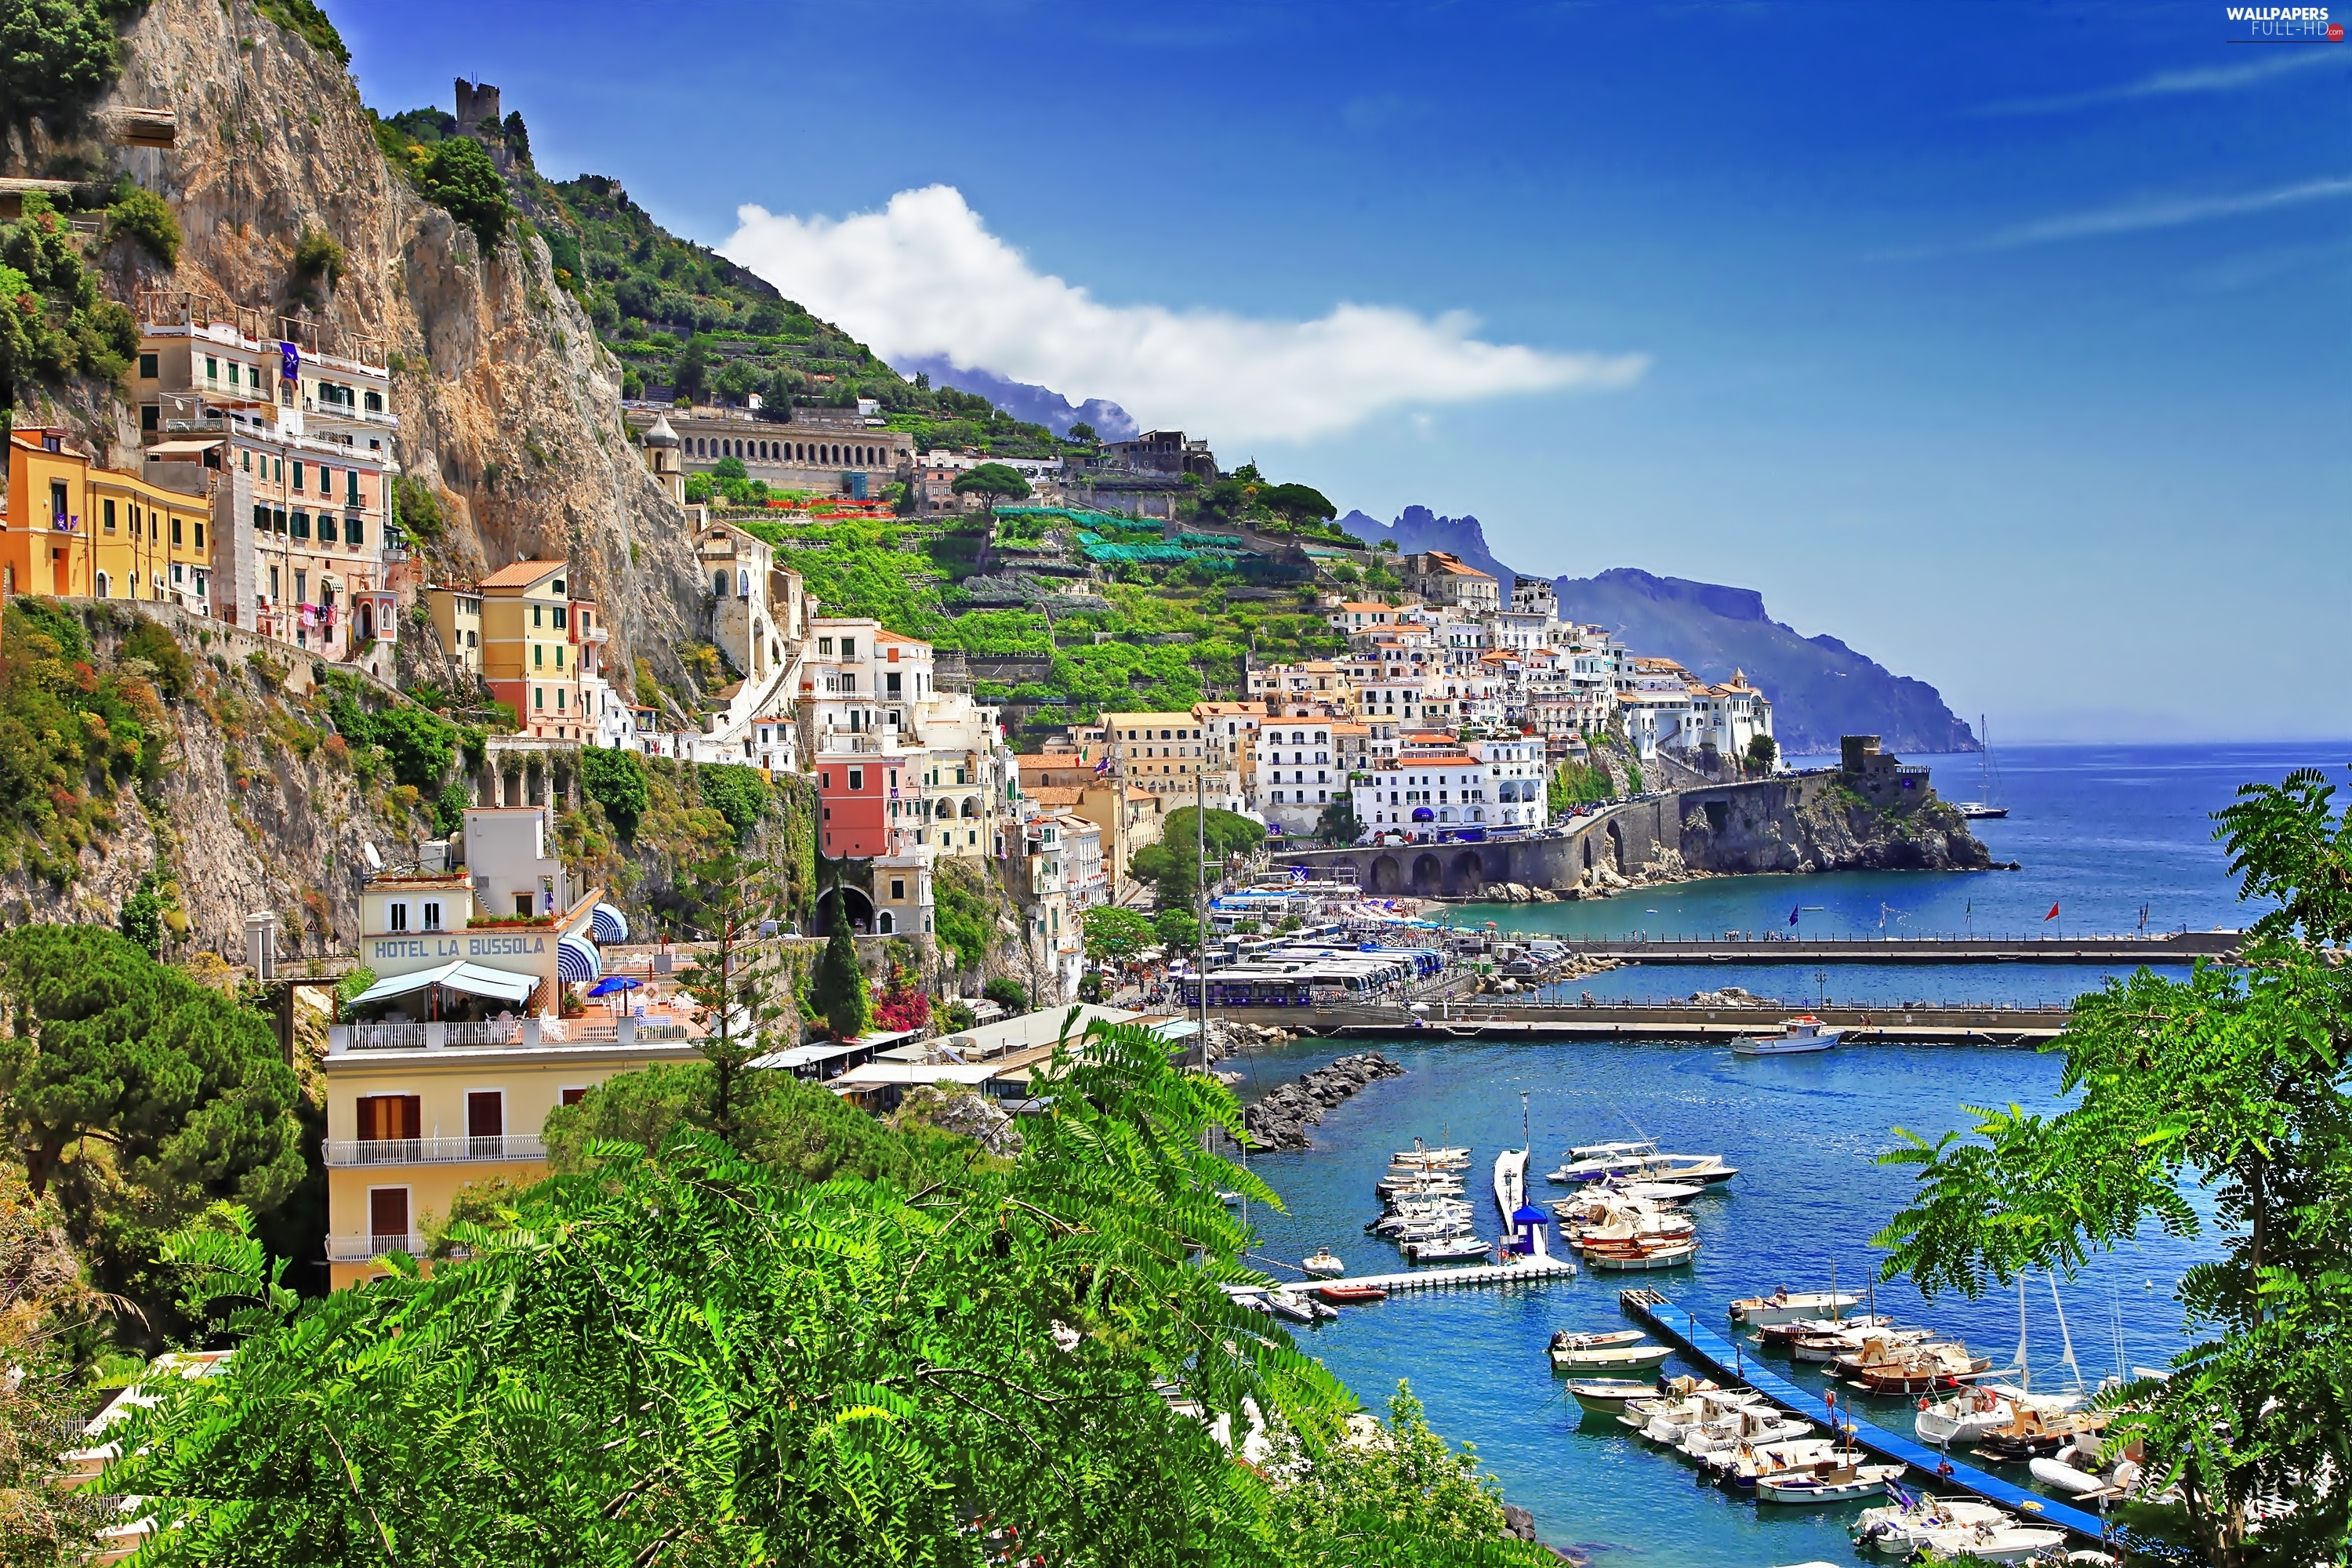 Hotels, Mountains, Boats, Coast, Picture of Town, Italy, Positano, Aerial View, sea